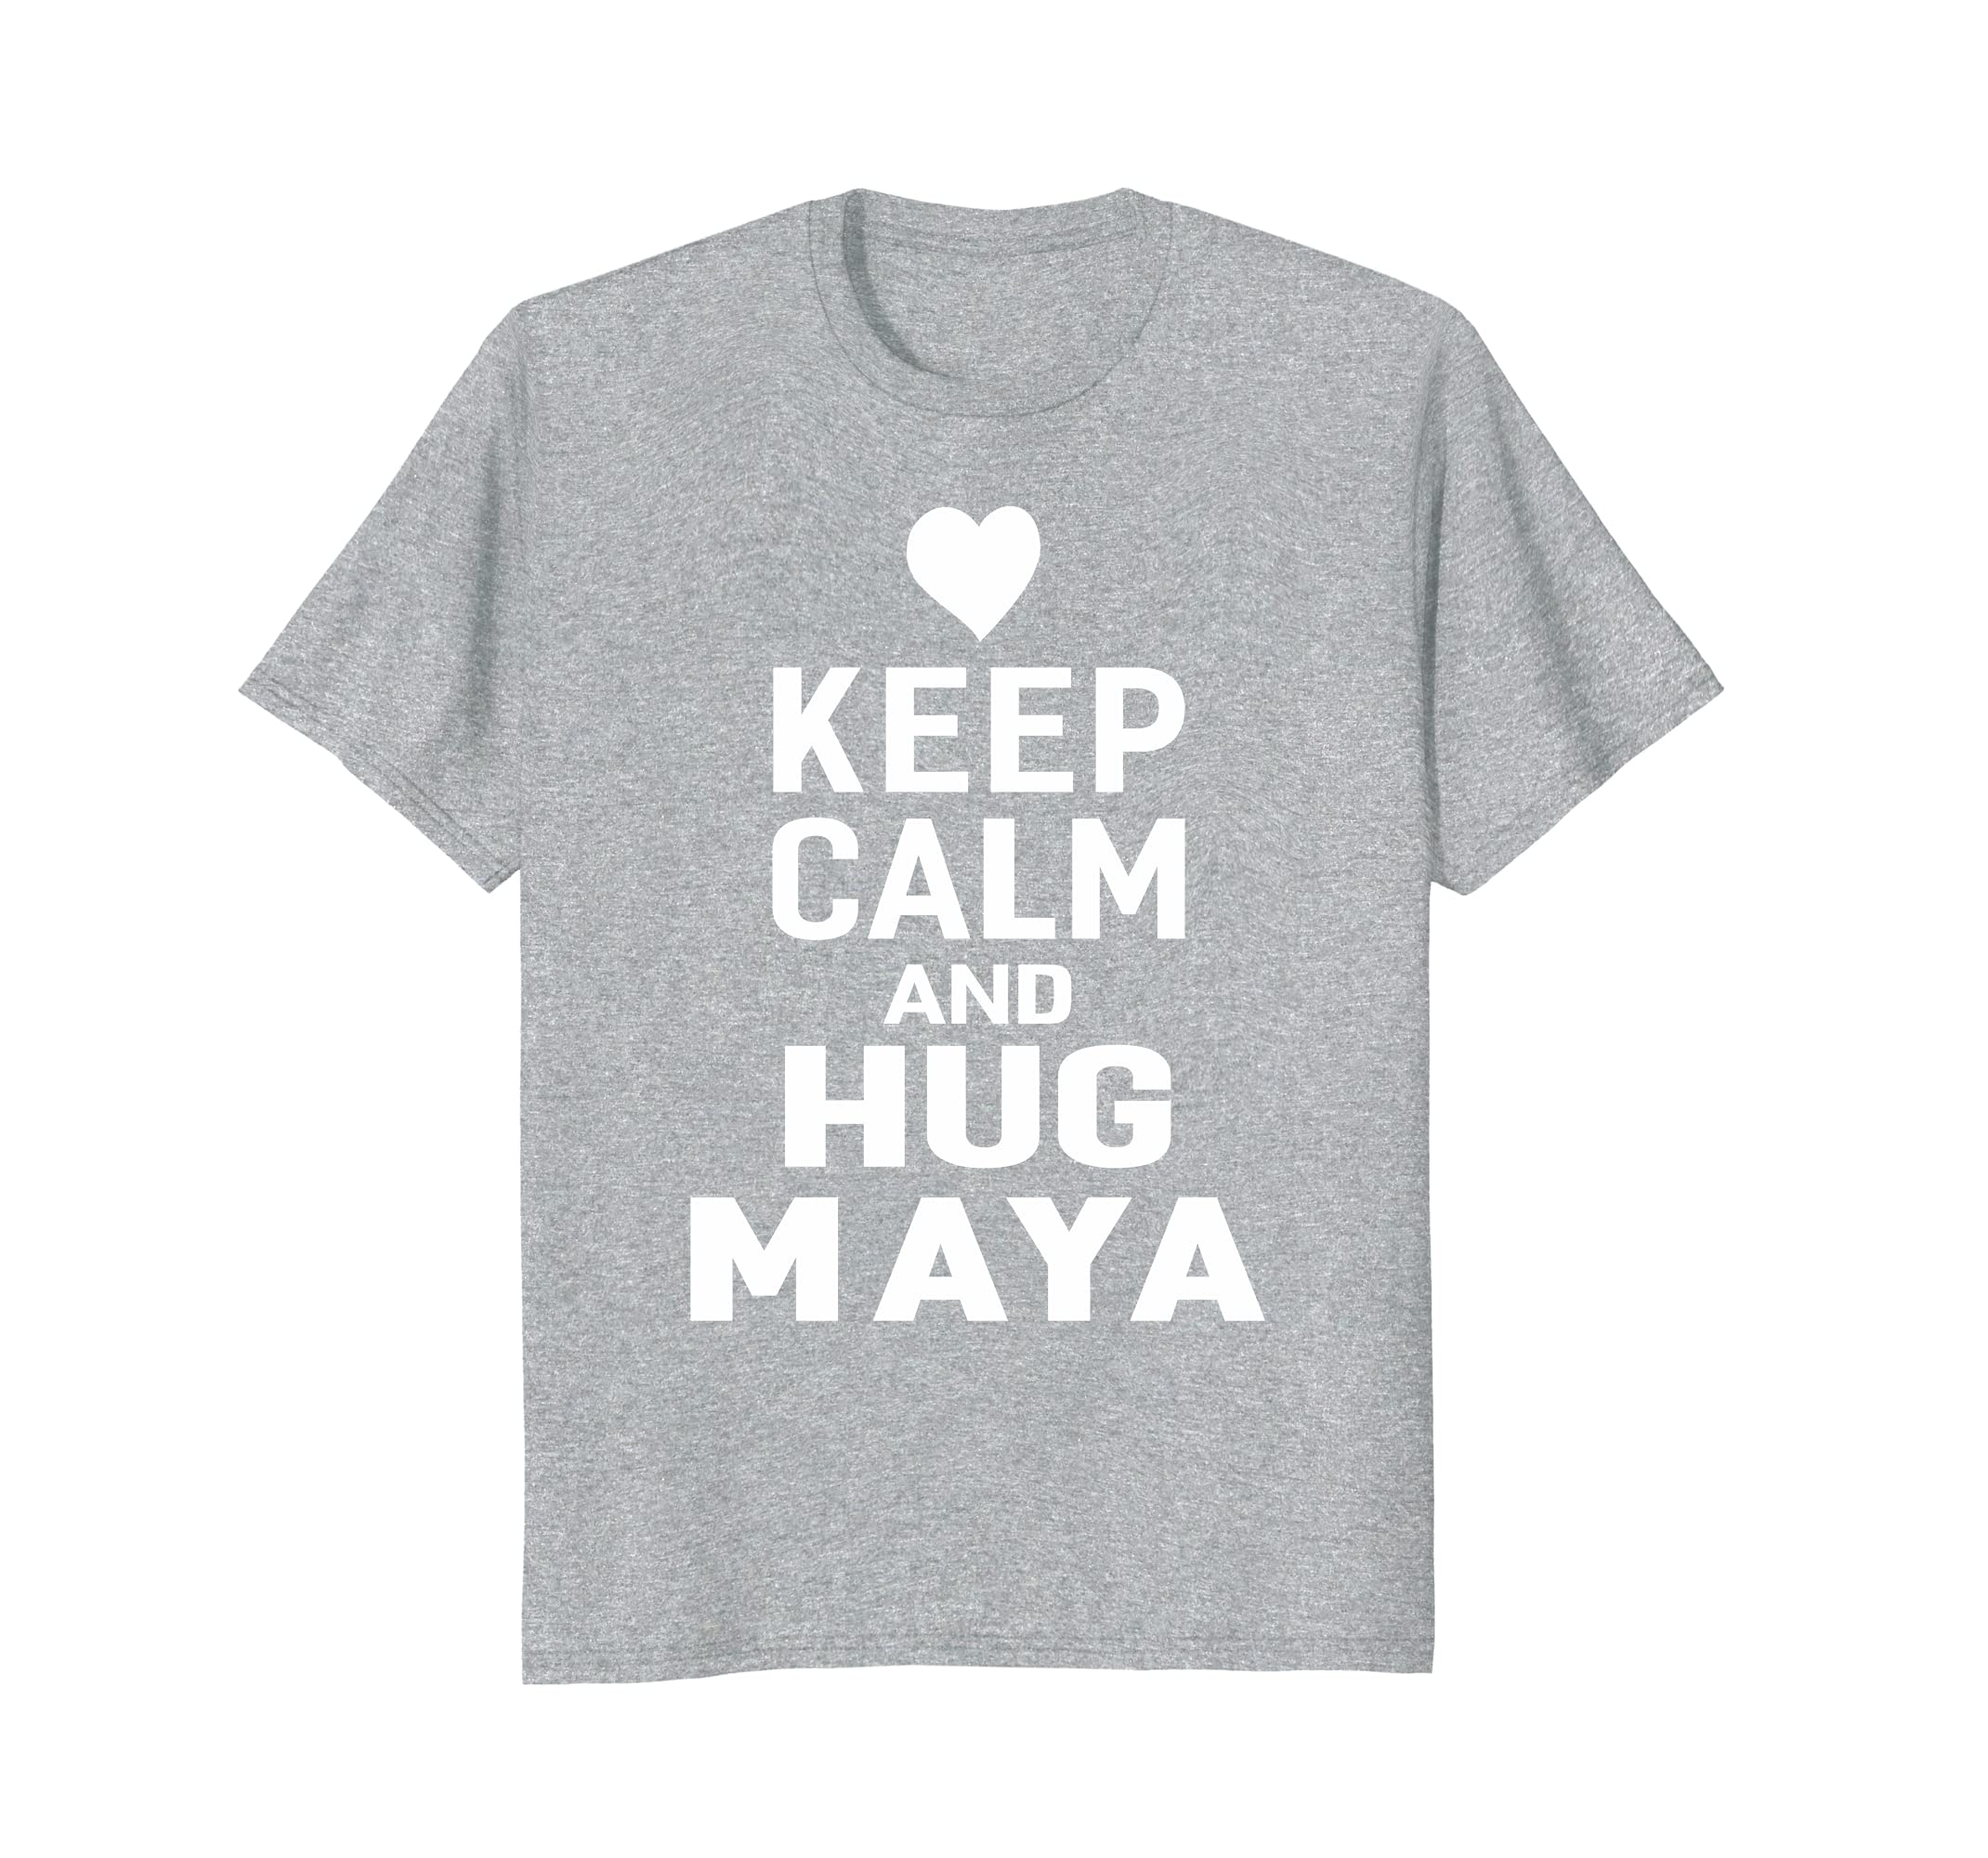 b6391a706 Keep Calm and Hug Maya Funny First Name T-Shirt Women-alottee gift ...